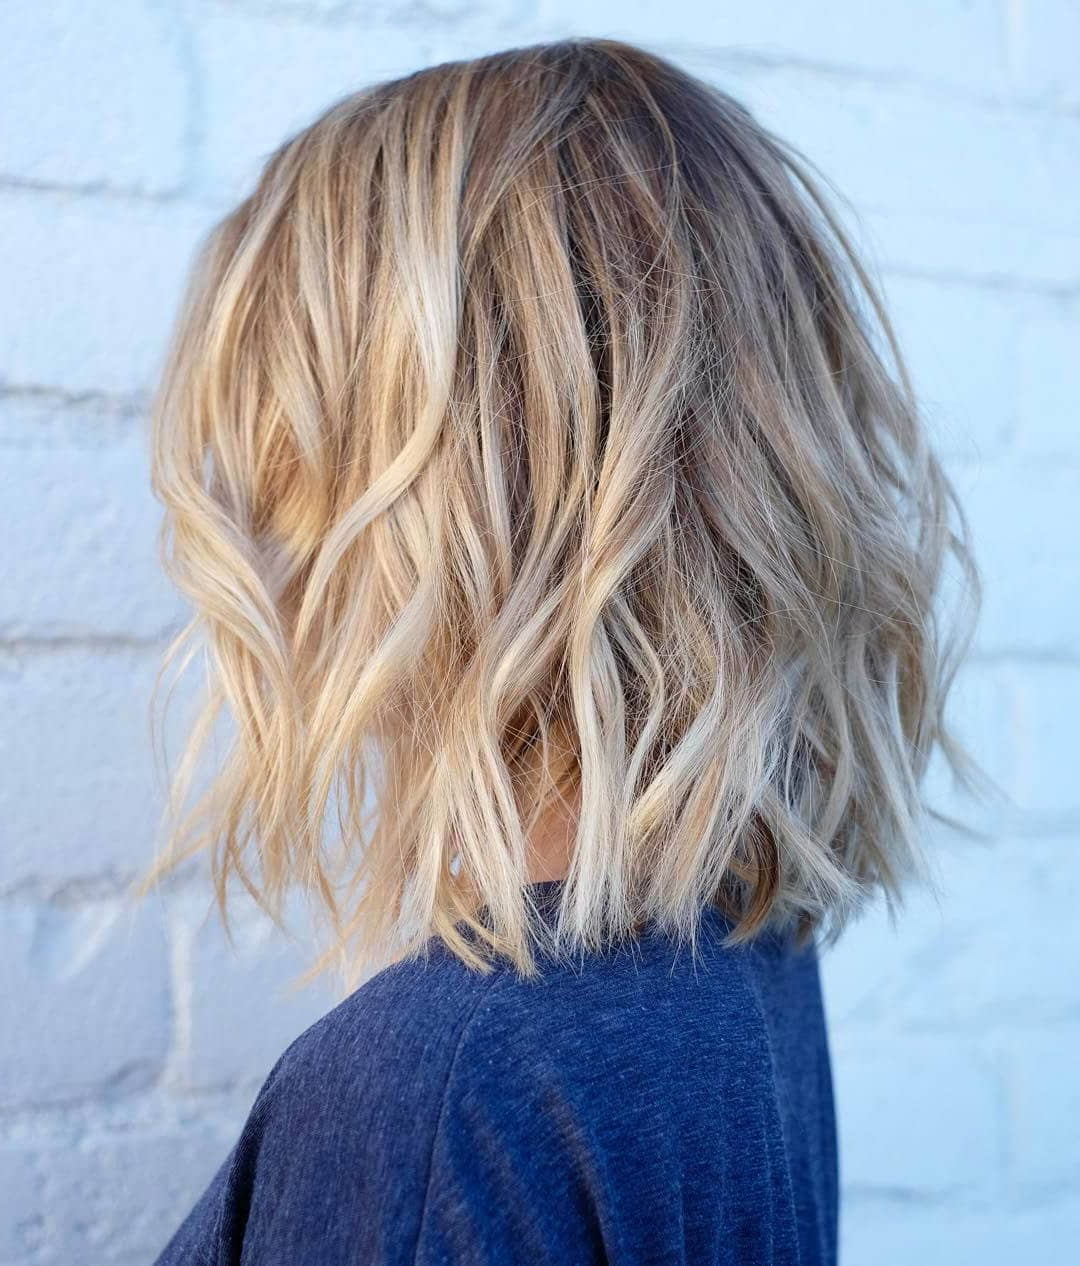 50 Fresh Short Blonde Hair Ideas To Update Your Style In 2018 In Blonde Balayage Bob Hairstyles With Angled Layers (Gallery 9 of 20)